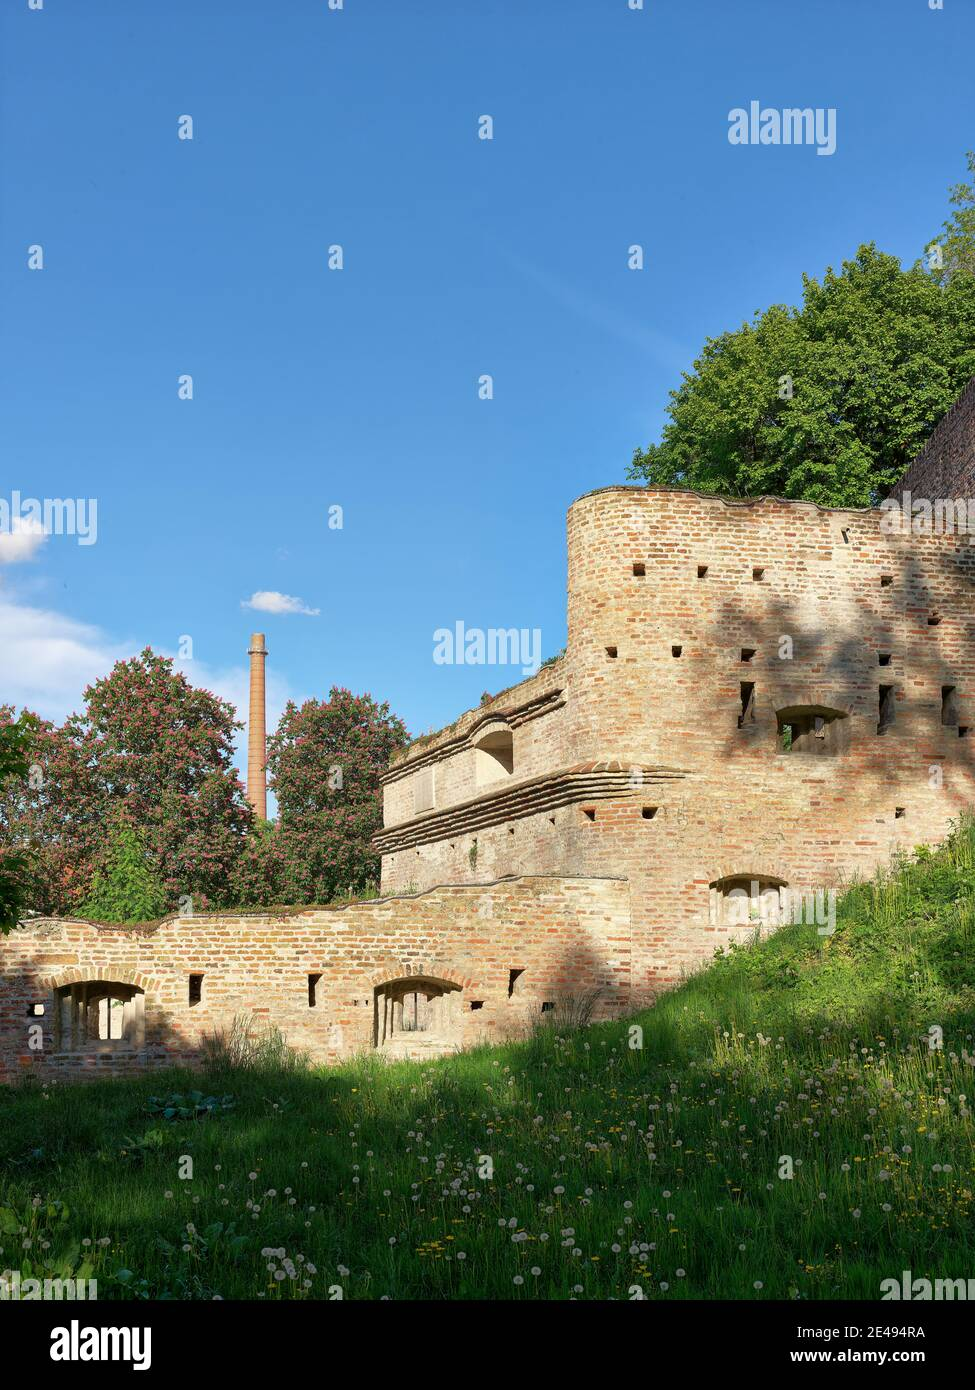 Bastion, citations, defense system, city wall, clinker wall, brick wall, city moat, fortification, historical old town, historical, old town, monument, monument site, listed, place of interest Stock Photo